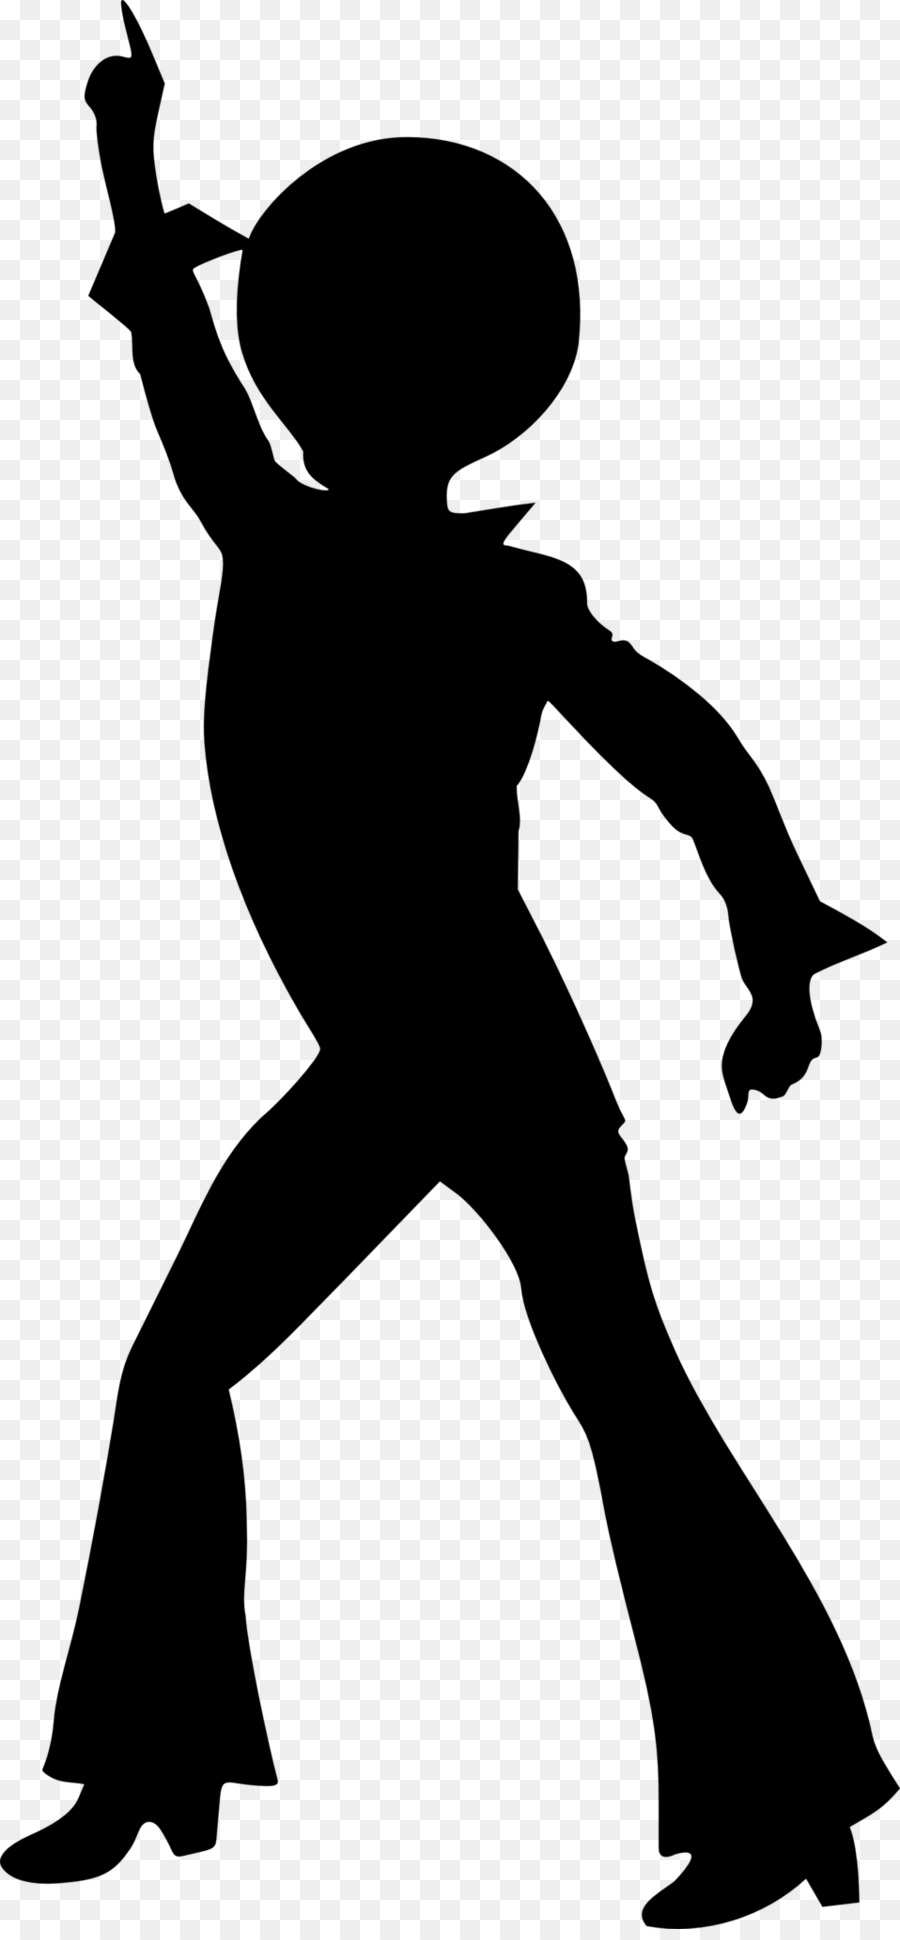 Party Silhouette clipart.